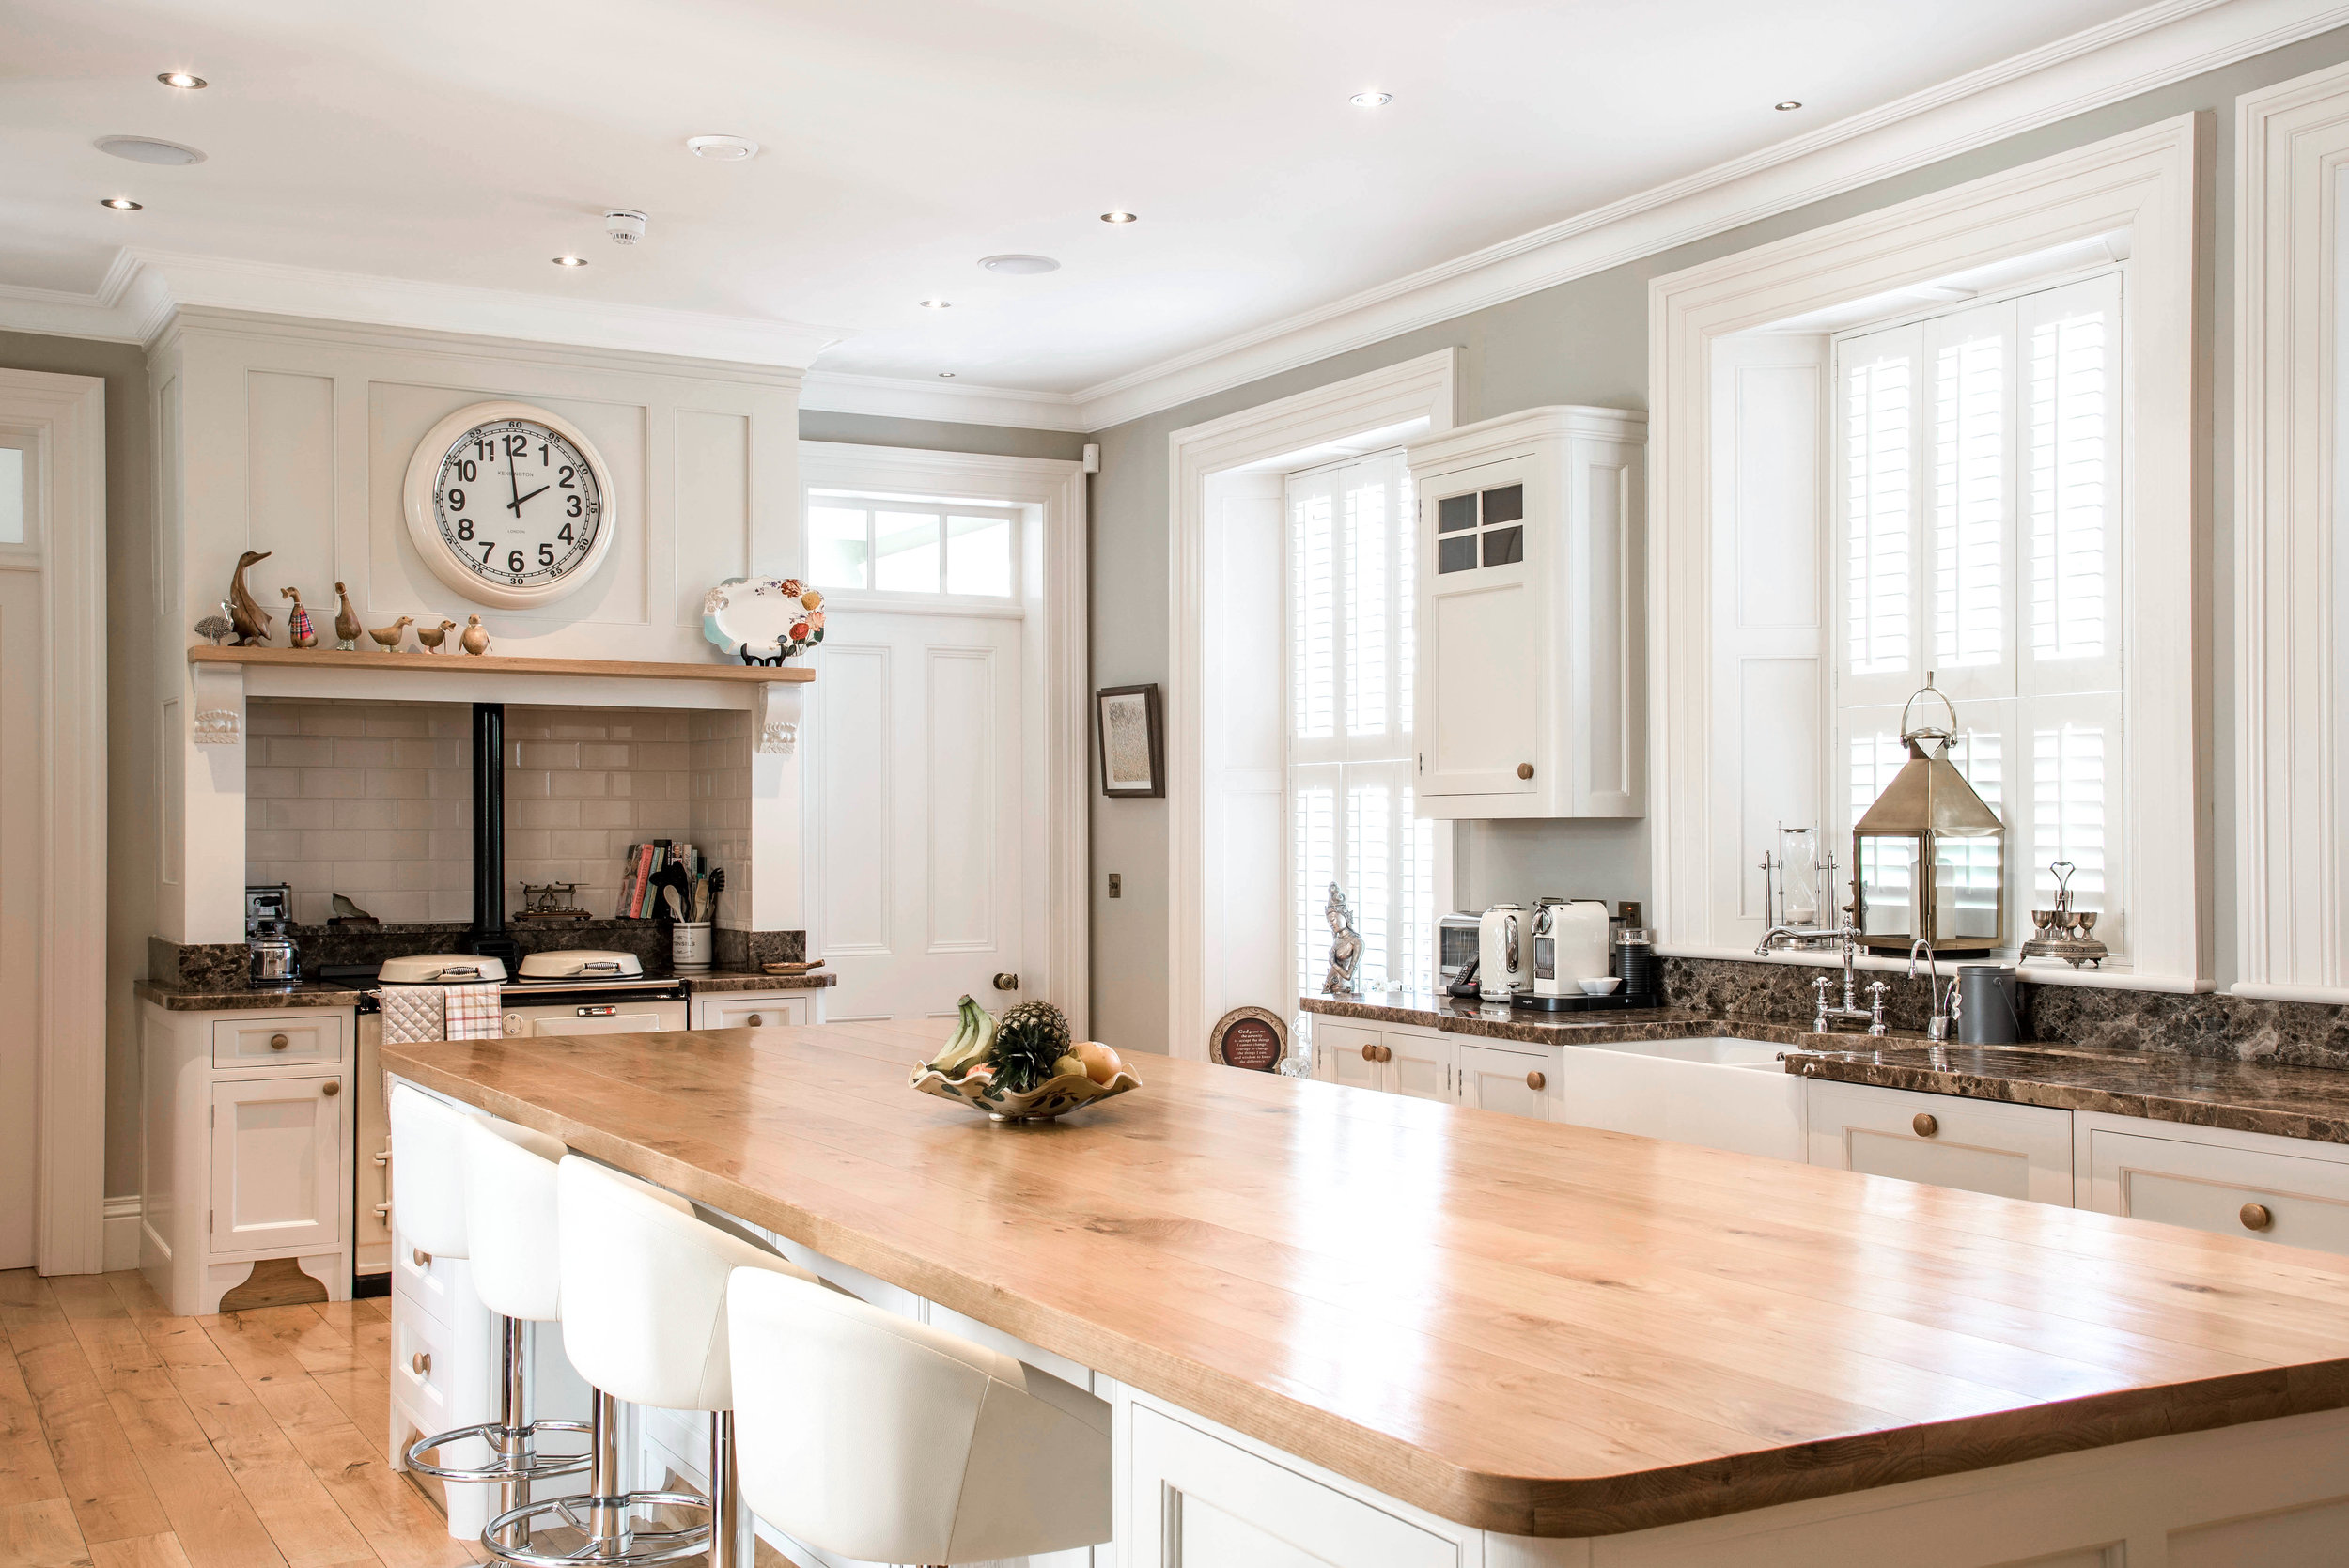 Paul_McAlister_Architects_Classical_Kitchen.jpg